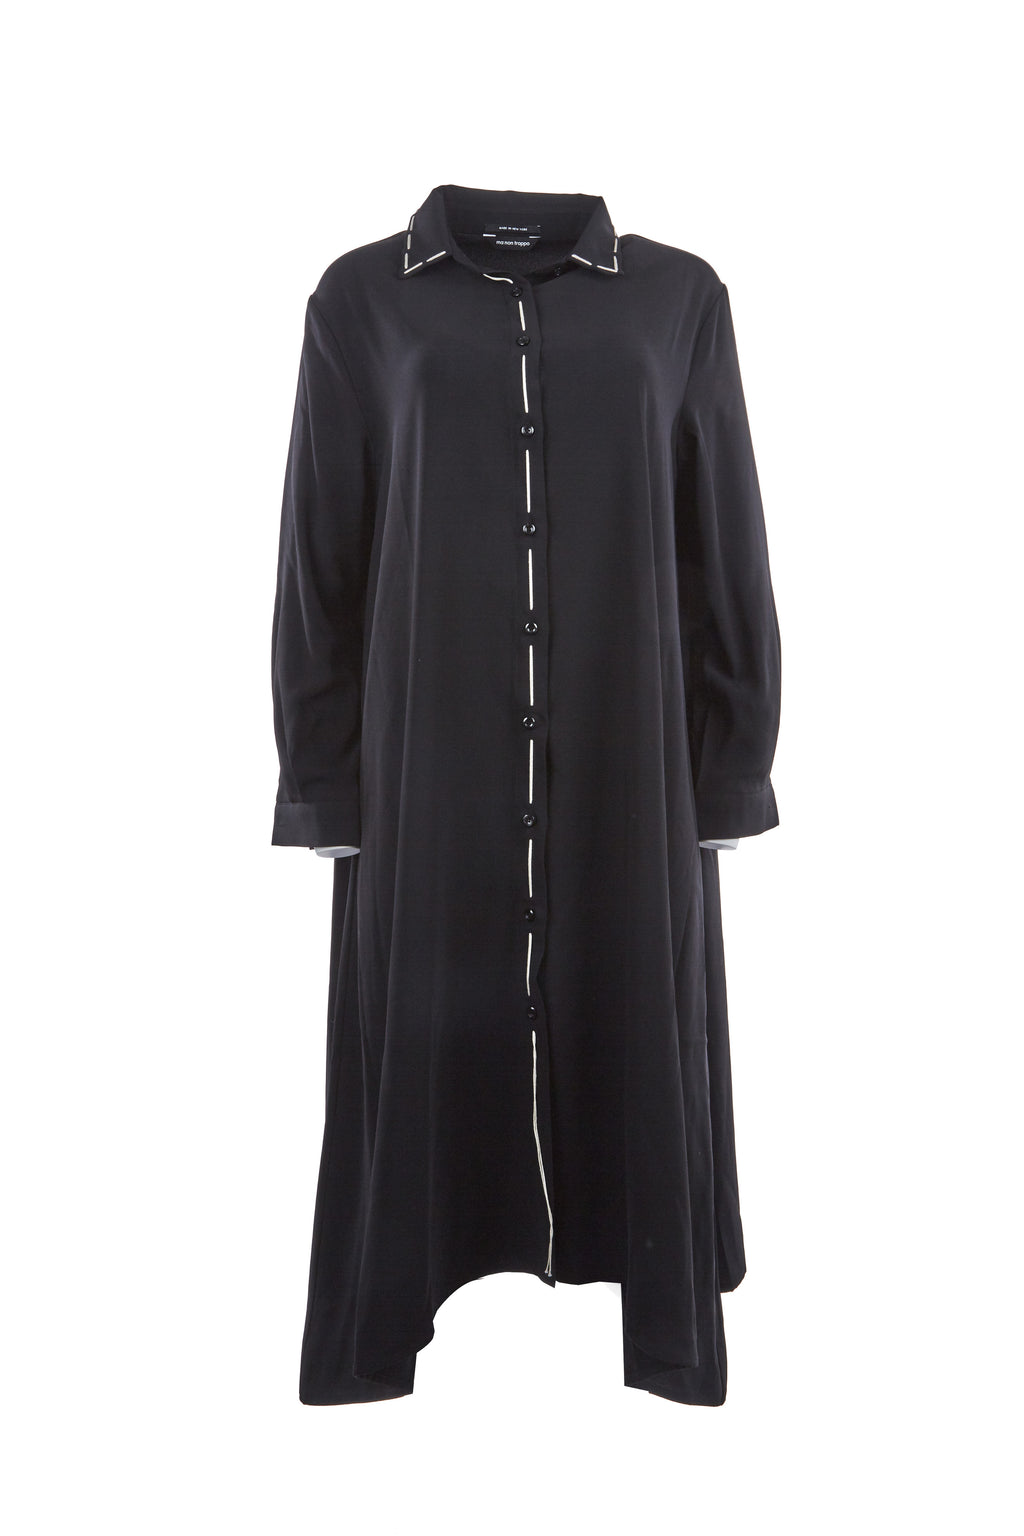 Scherzazndo oversize shirts dress with hand st.